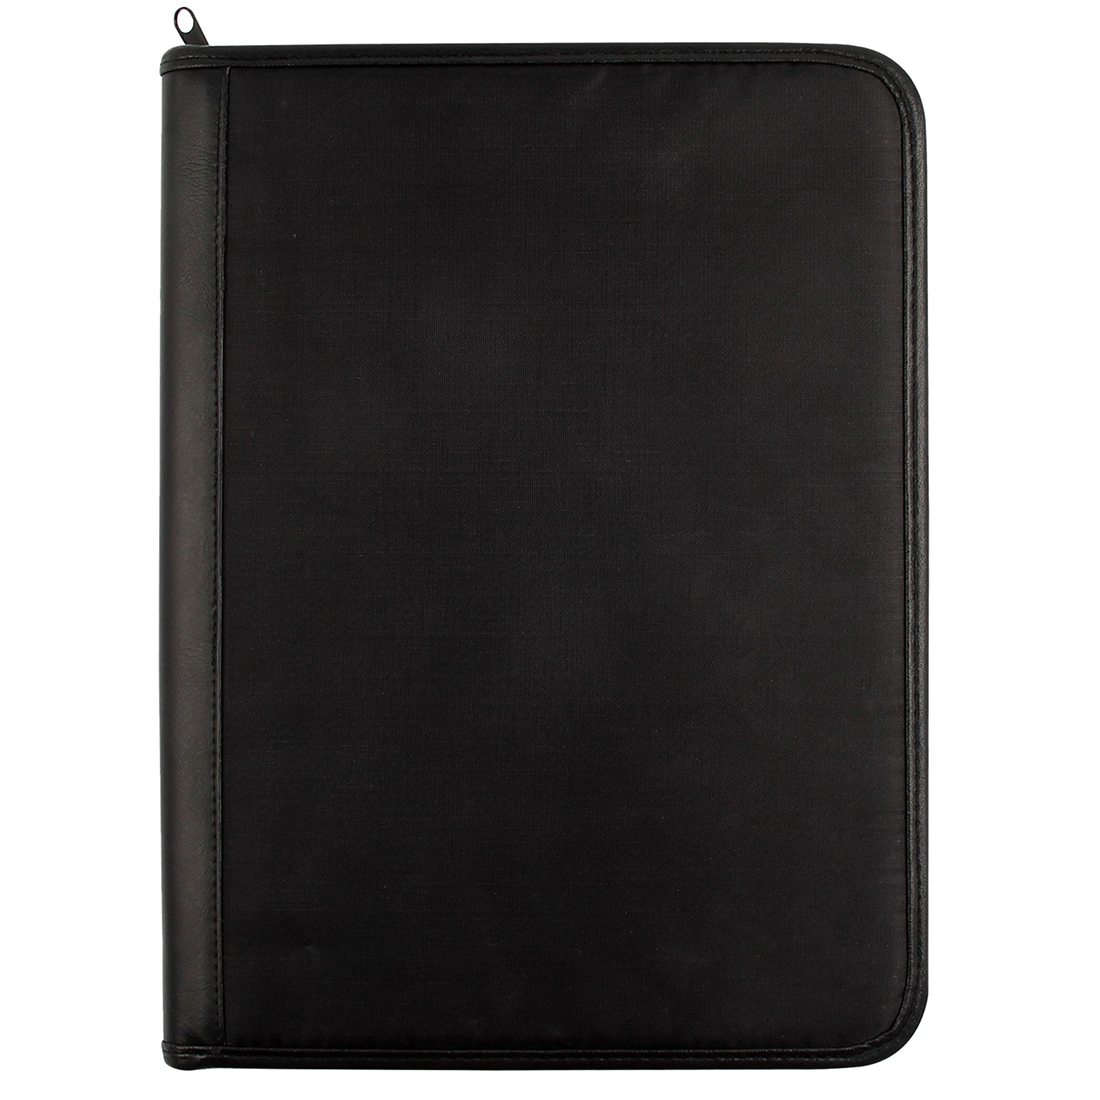 High Quality Modern Fashion Men design A4 Zipped Multifunction Business Meeting Folder File Bag with A4 writing pad Office Tool